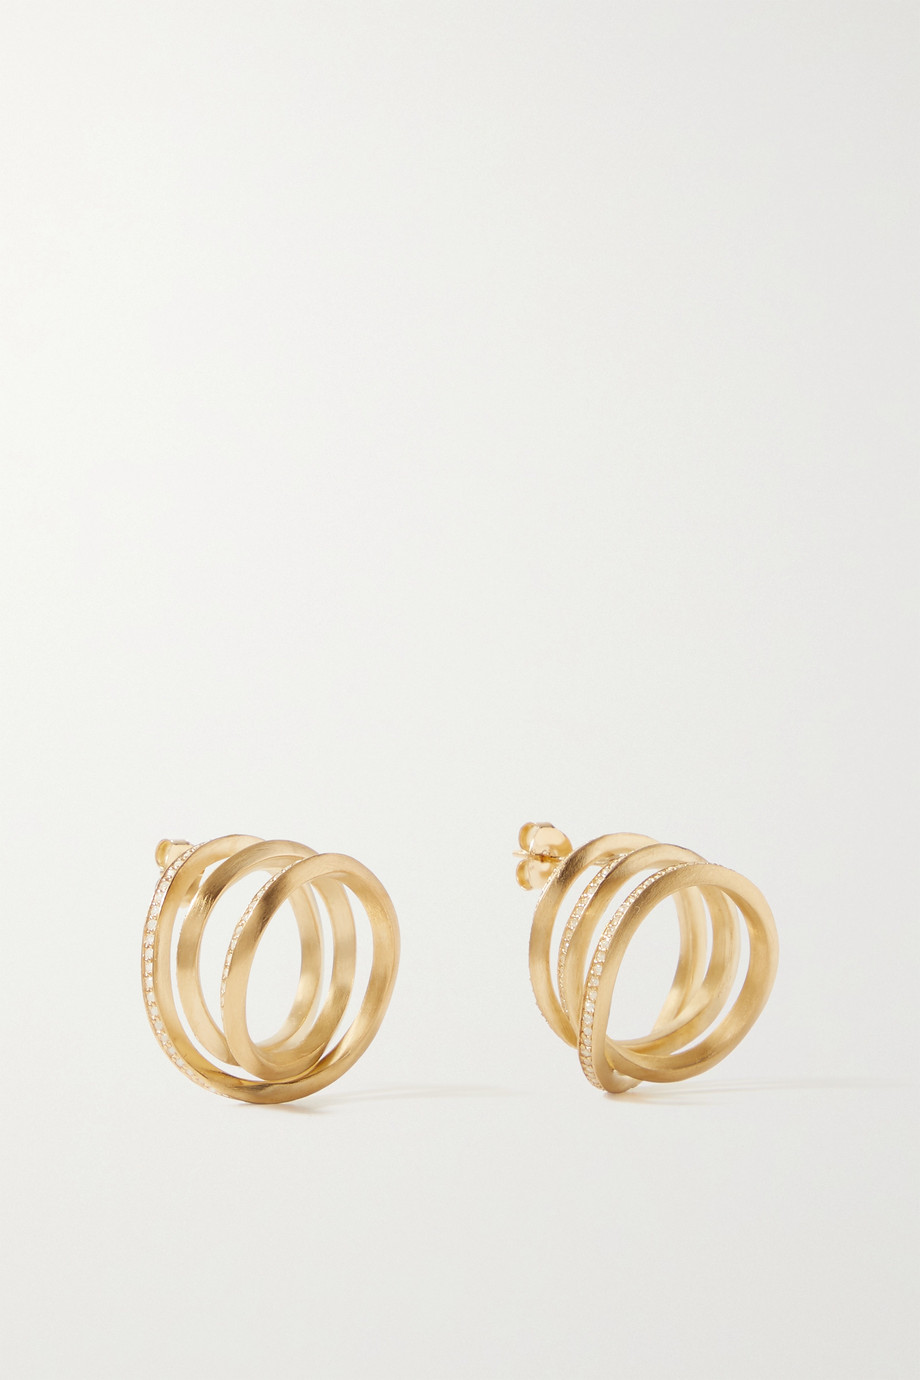 COMPLETEDWORKS The Transit of Venus gold-plated topaz earrings